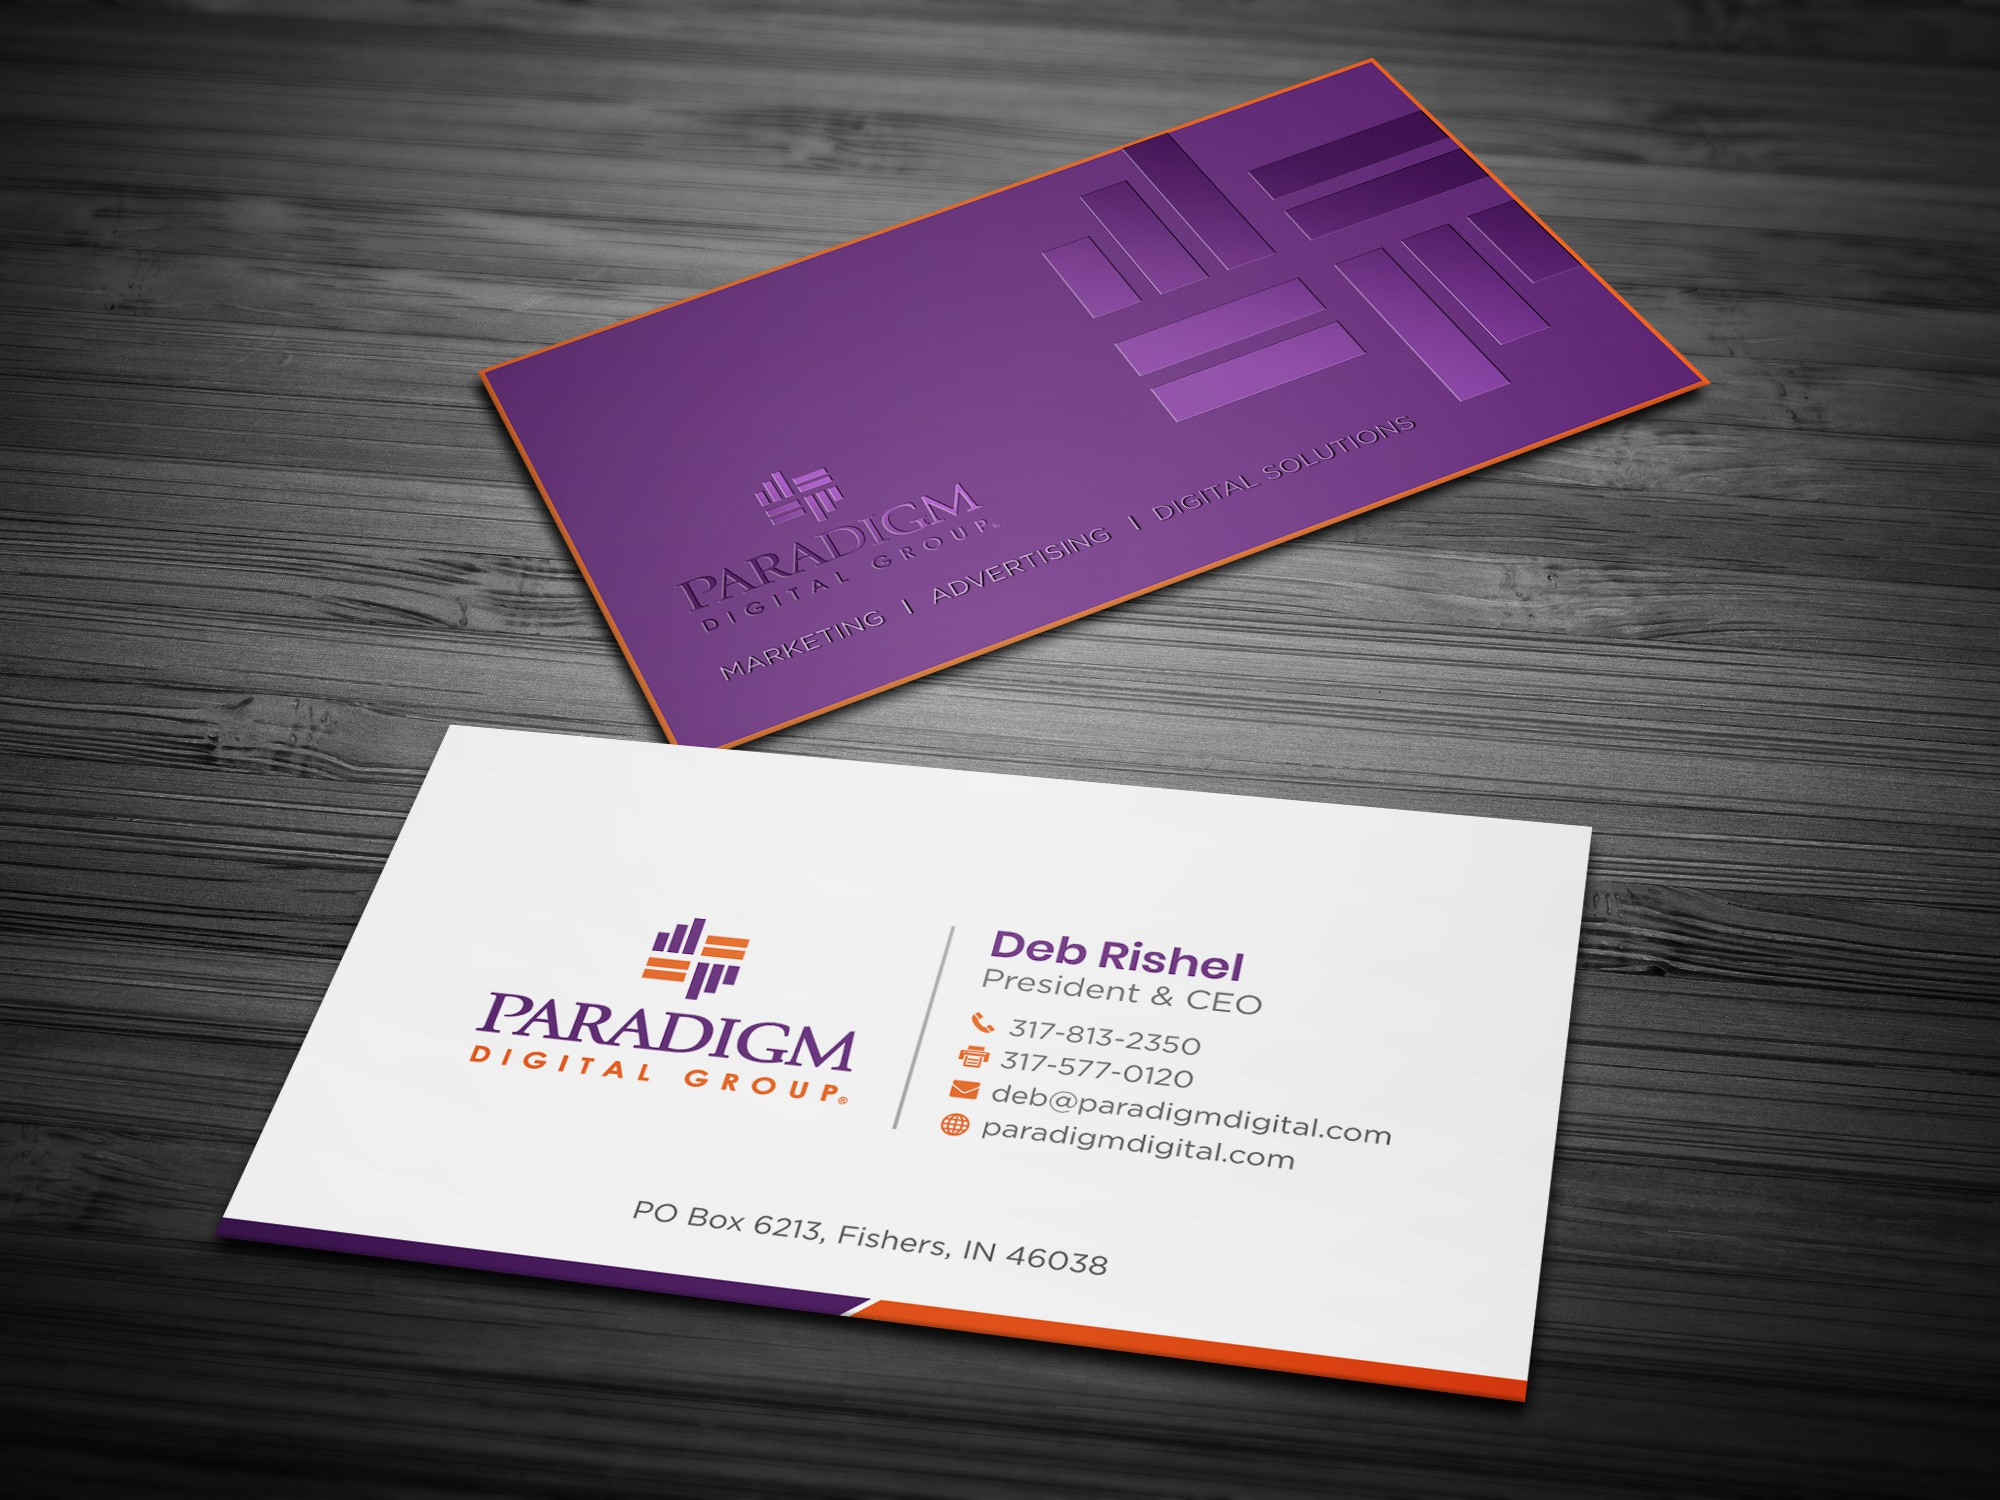 Business Cards for a Digital Marketing Agency **NO NEW DESIGNERS at moment**